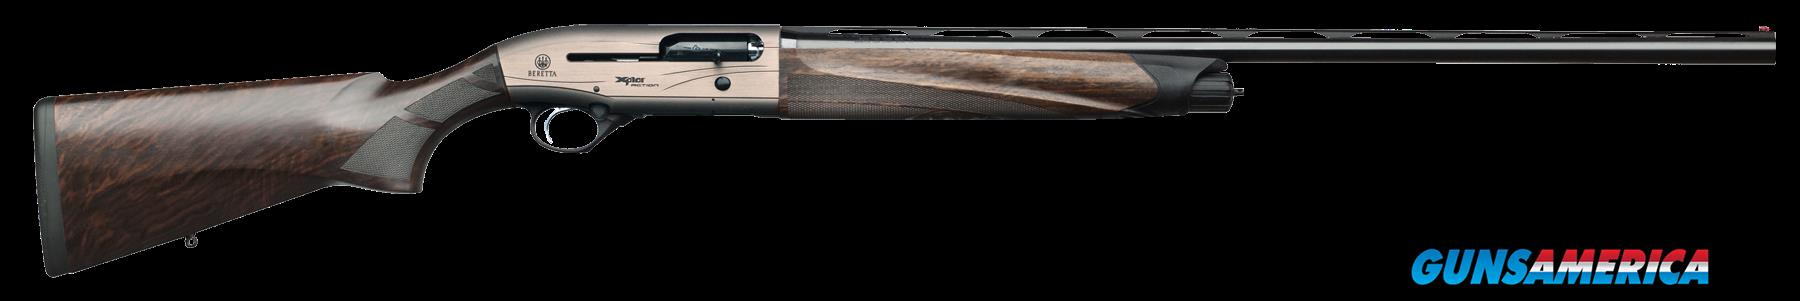 "Beretta USA J40AY26 A400 Xplor Action Semi-Automatic 20 Gauge 26"" 3"" Walnut Stk KO Bronze Toned  Guns > Shotguns > B Misc Shotguns"